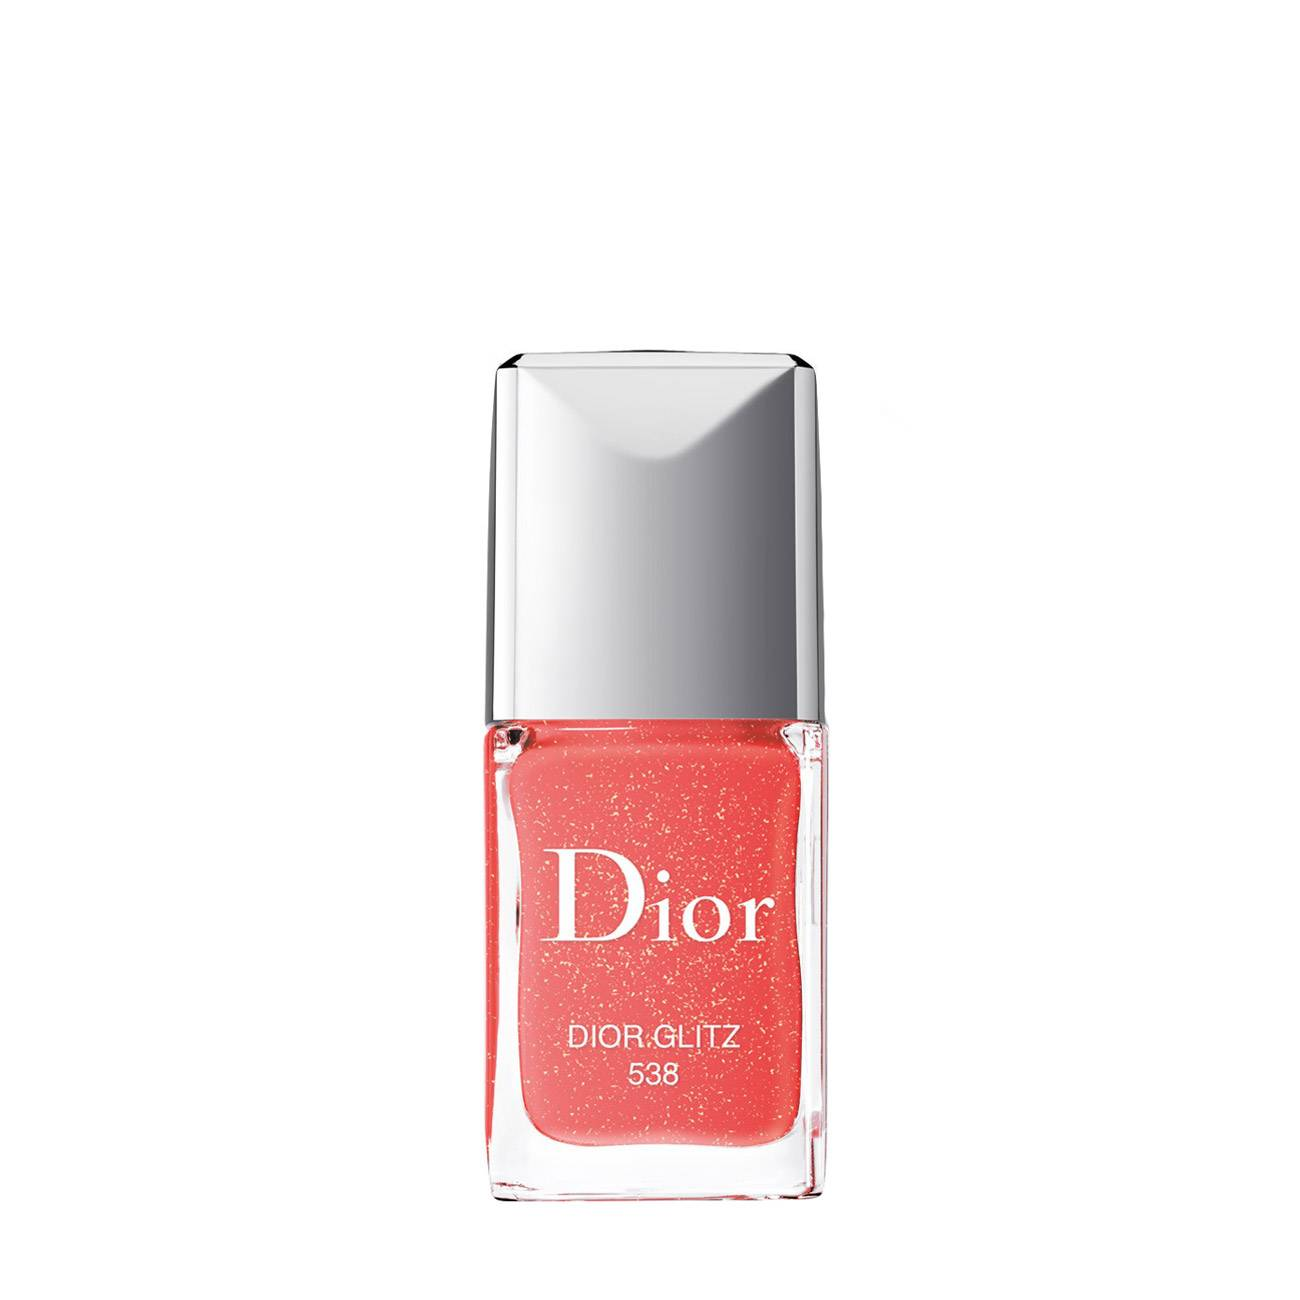 Dior Vernis 538 10ml Dior imagine 2021 bestvalue.eu